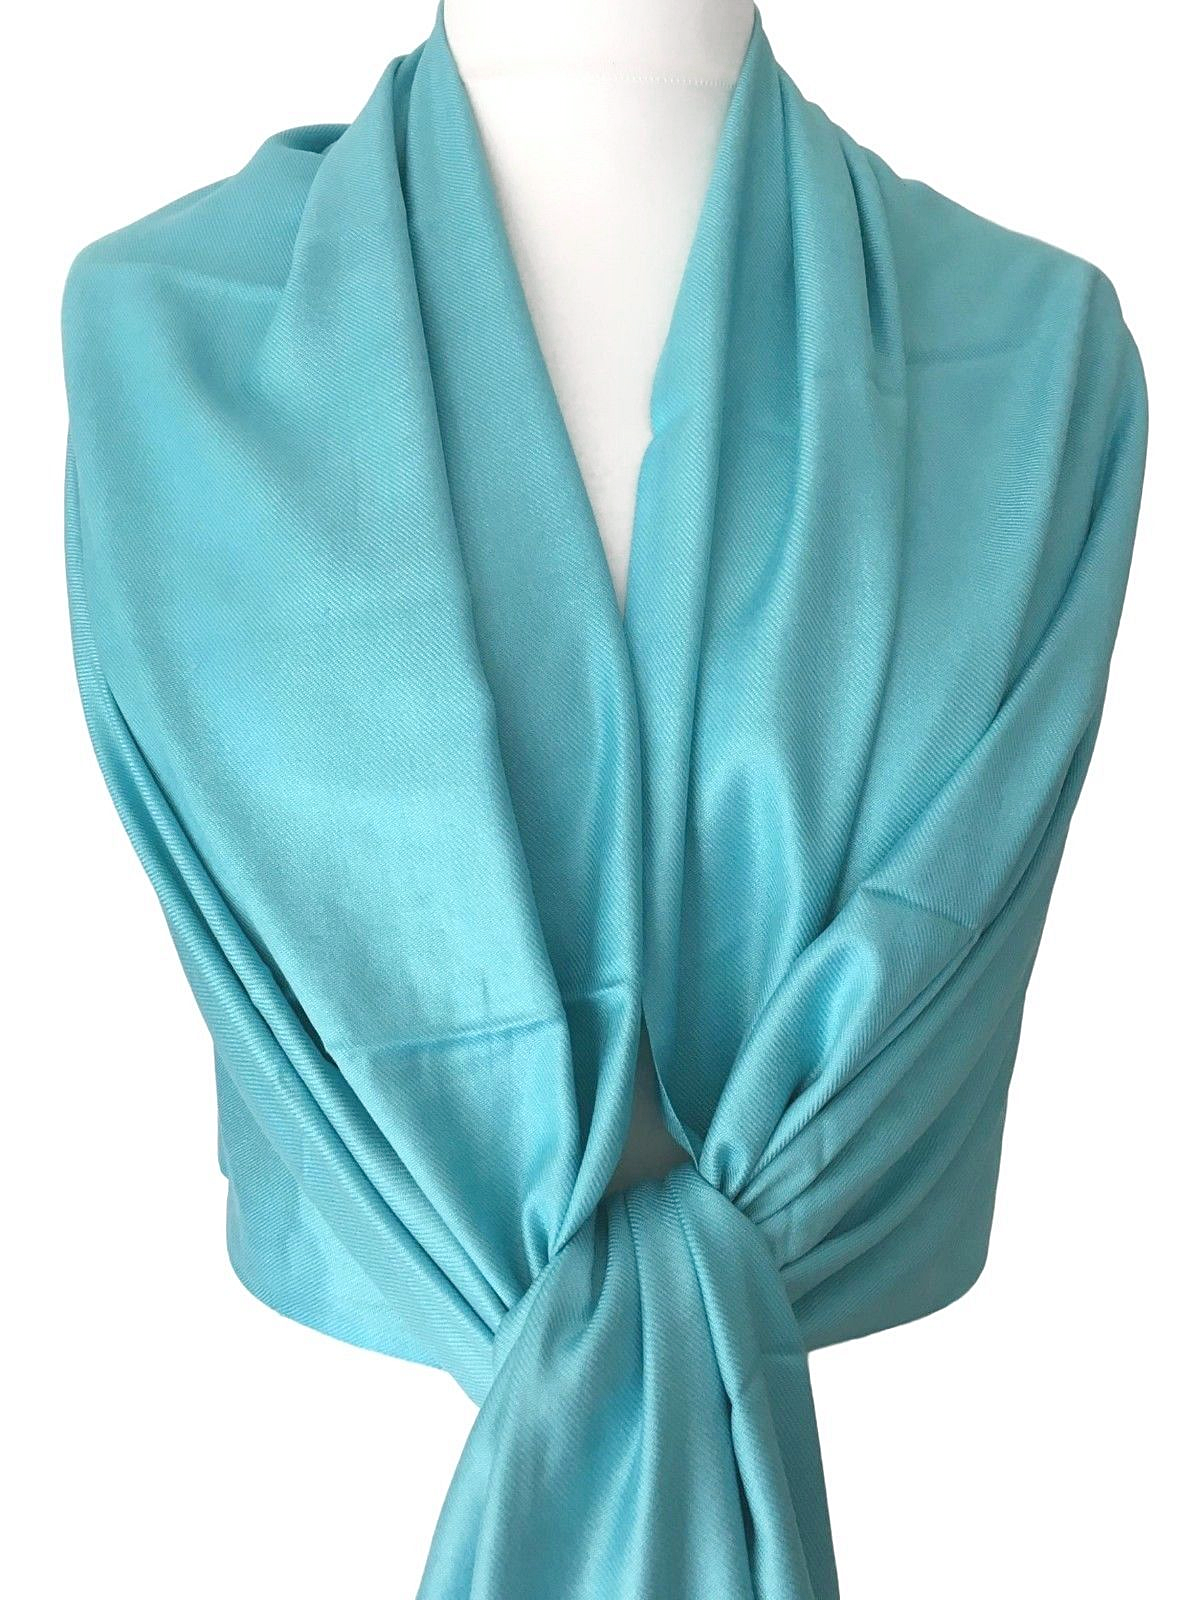 Teal Pashmina Petrol Blue Wrap Peacock Blue Scarf Fair Trade Ladies Shawl New